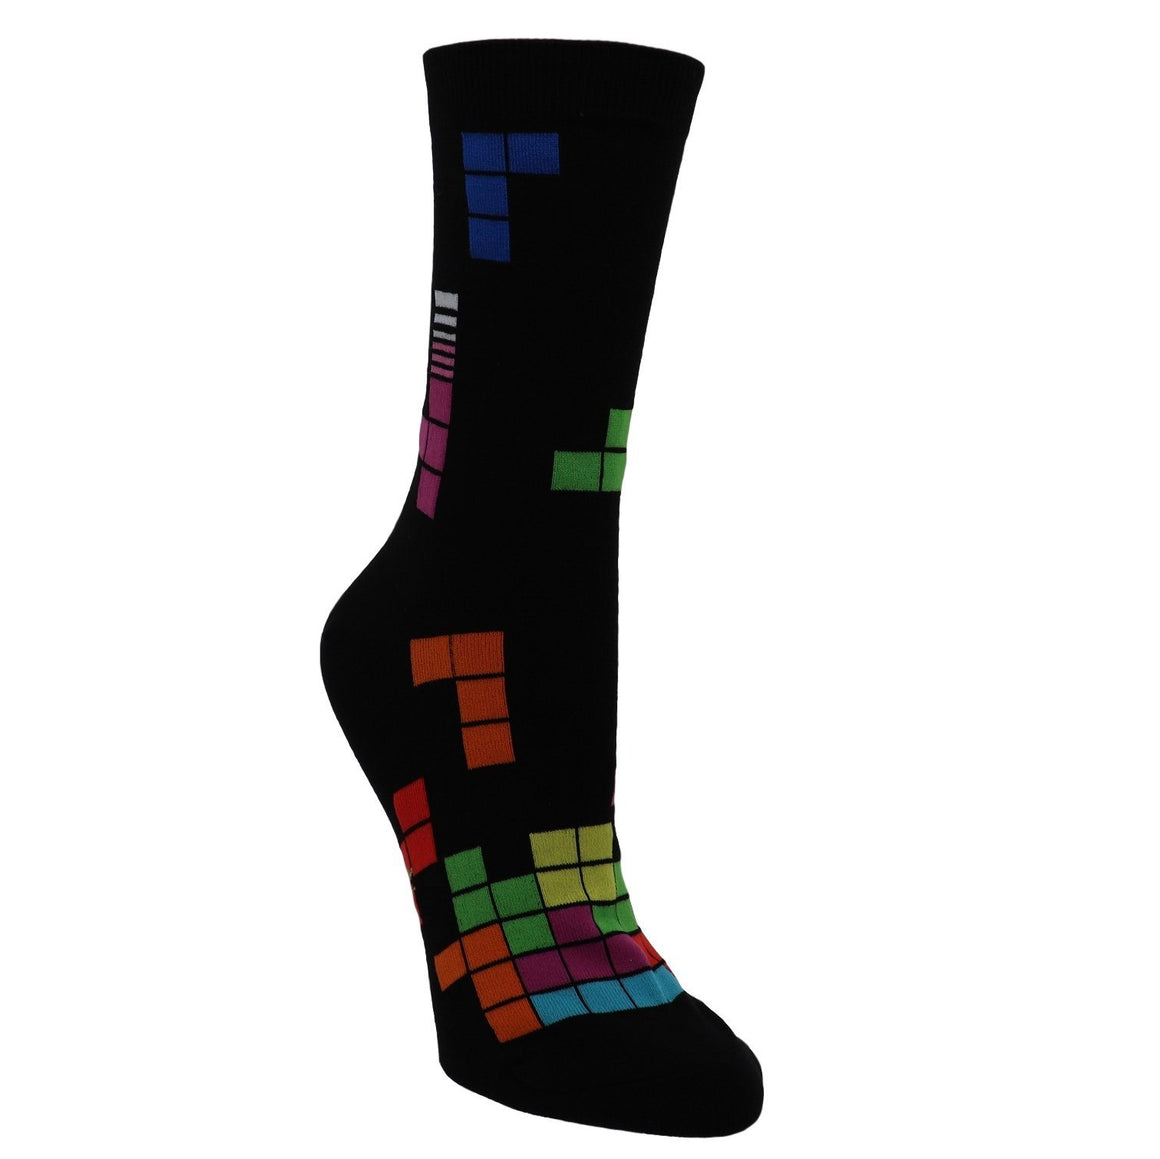 Tetris High Score Women's Socks by Sock it to Me - The Sock Spot